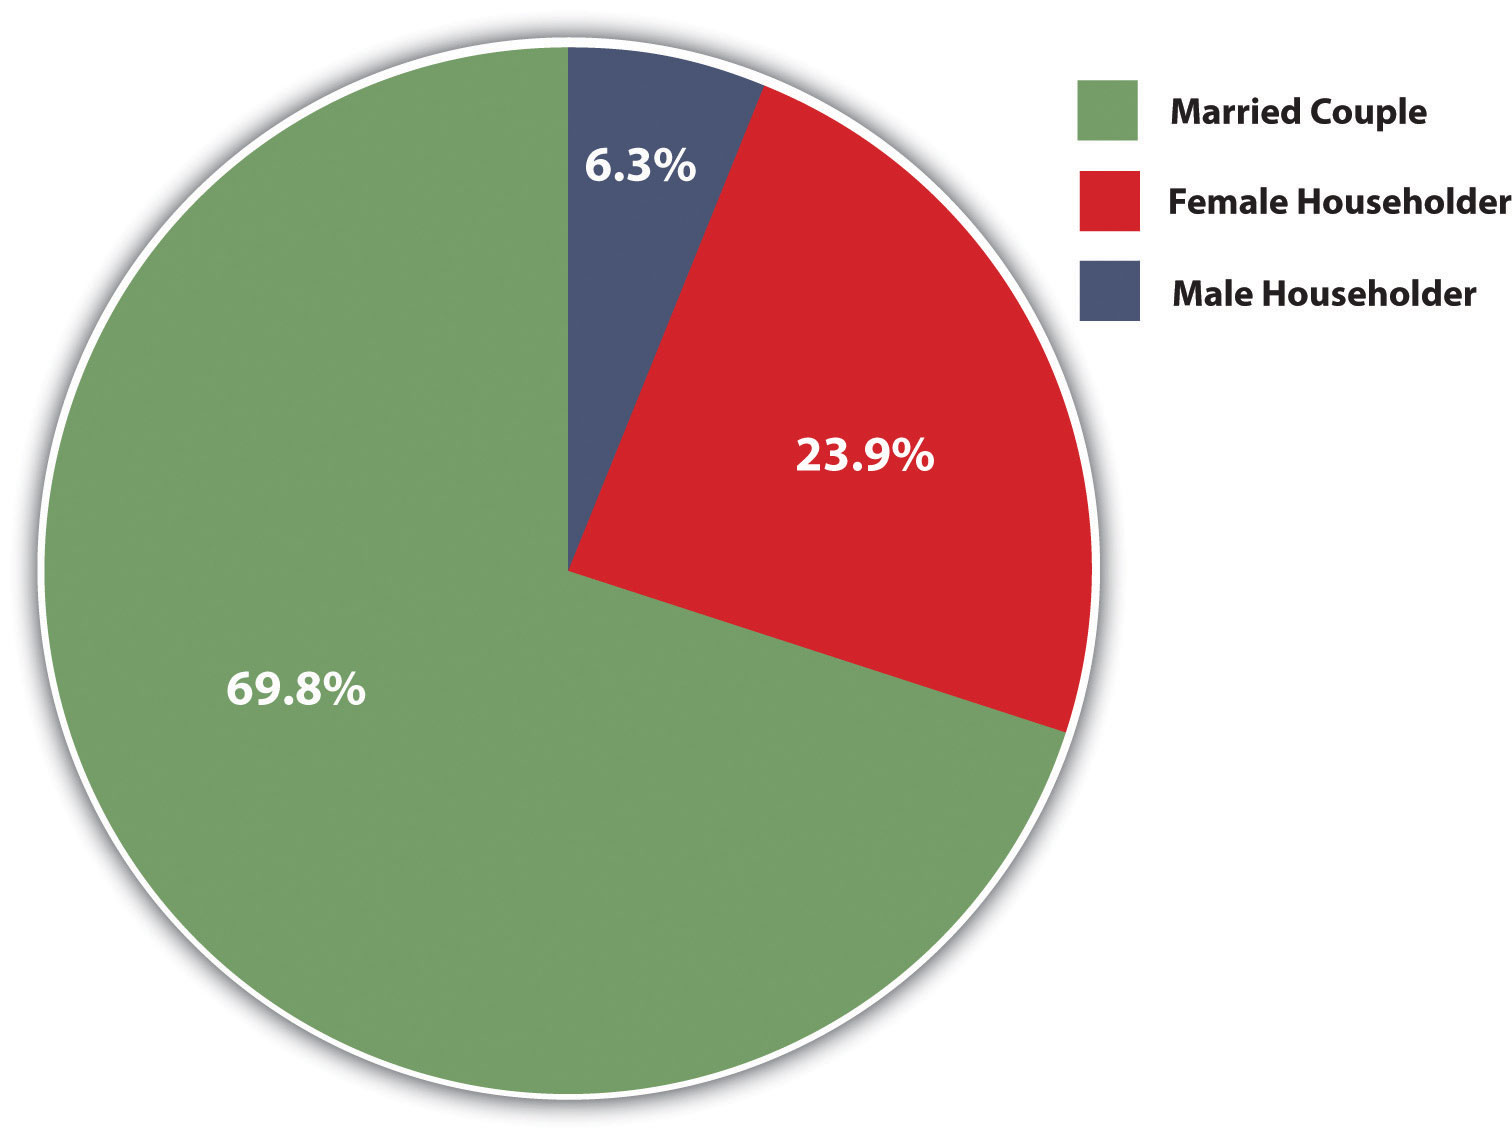 Pie chart of Family Households with Children under 18 Years of Age: 69.8% are a married couple, 23.9% is a female householder, and 6.3% is a male householder